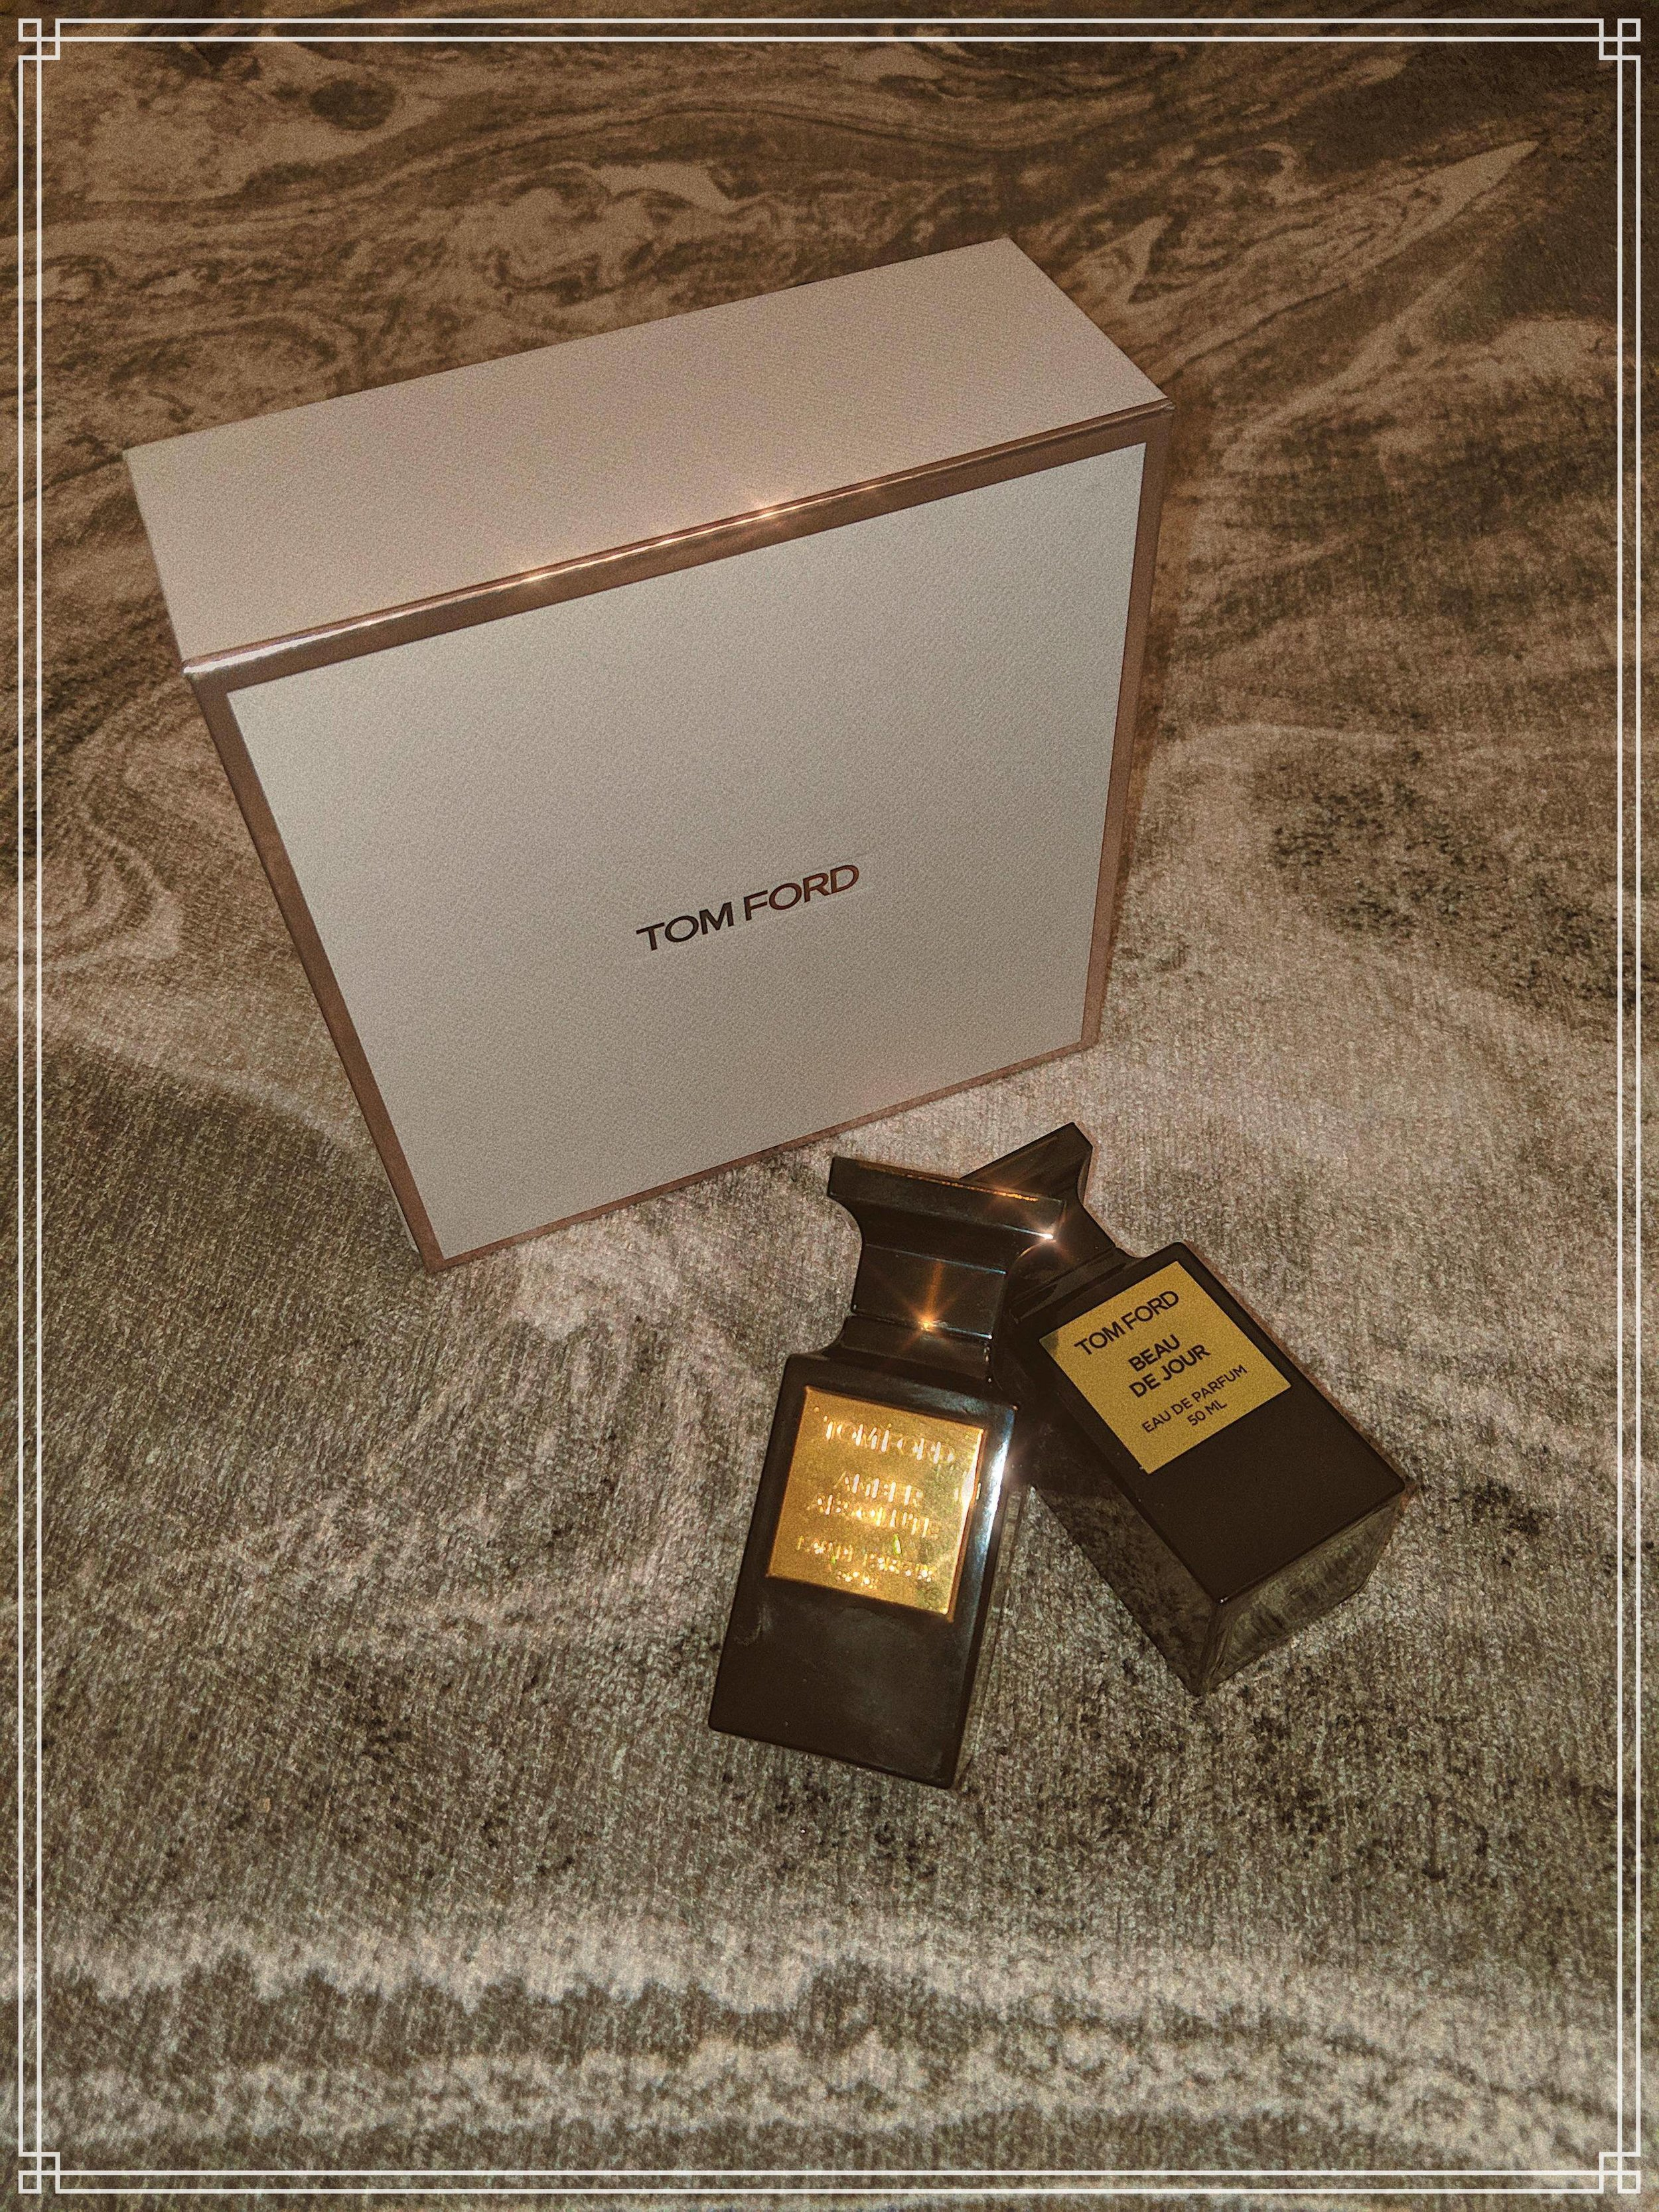 mybelonging-tom-ford-fragrance-cologne-giveaway1.JPG